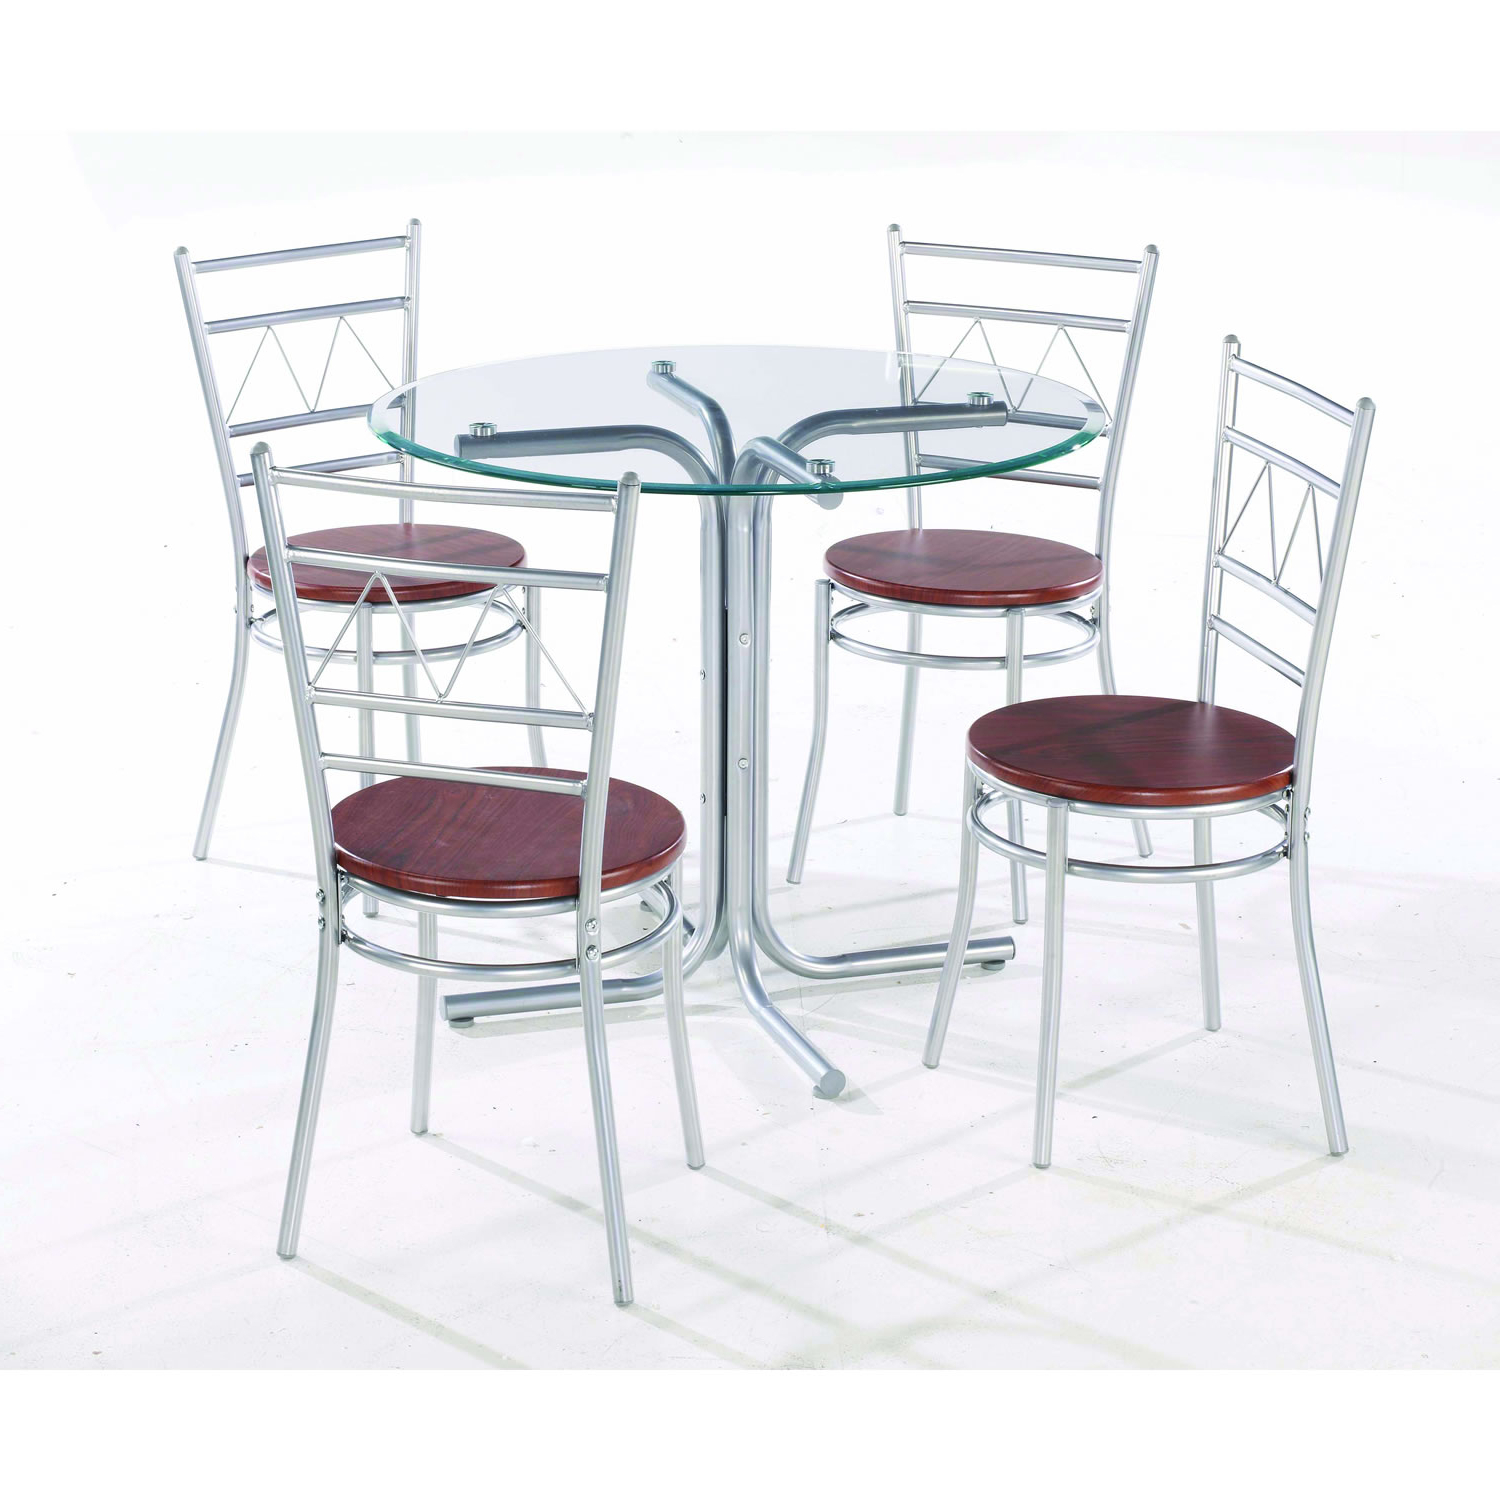 4 Seater Round Wooden Dining Tables With Chrome Legs inside Most Recent Wonderful Round Glass Dining Table With Four Chrome Metal